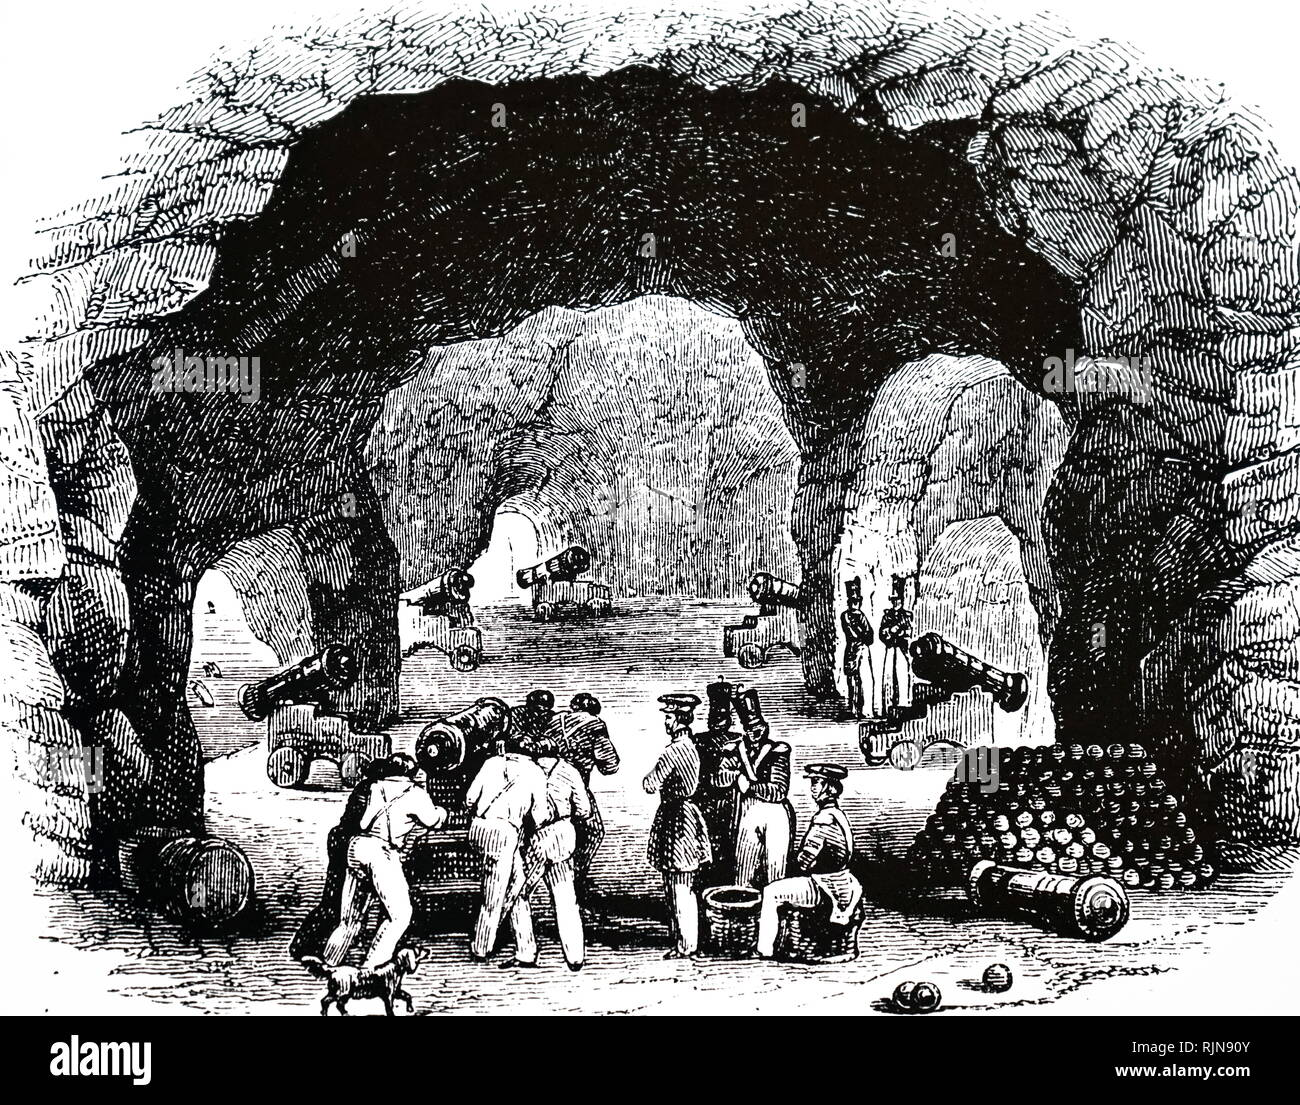 An engraving depicting St. George's Hall, Gibraltar, excavated from solid rock, this gallery could hold several hundred men, and had heavy guns pointing in various directions. Dated 19th century - Stock Image